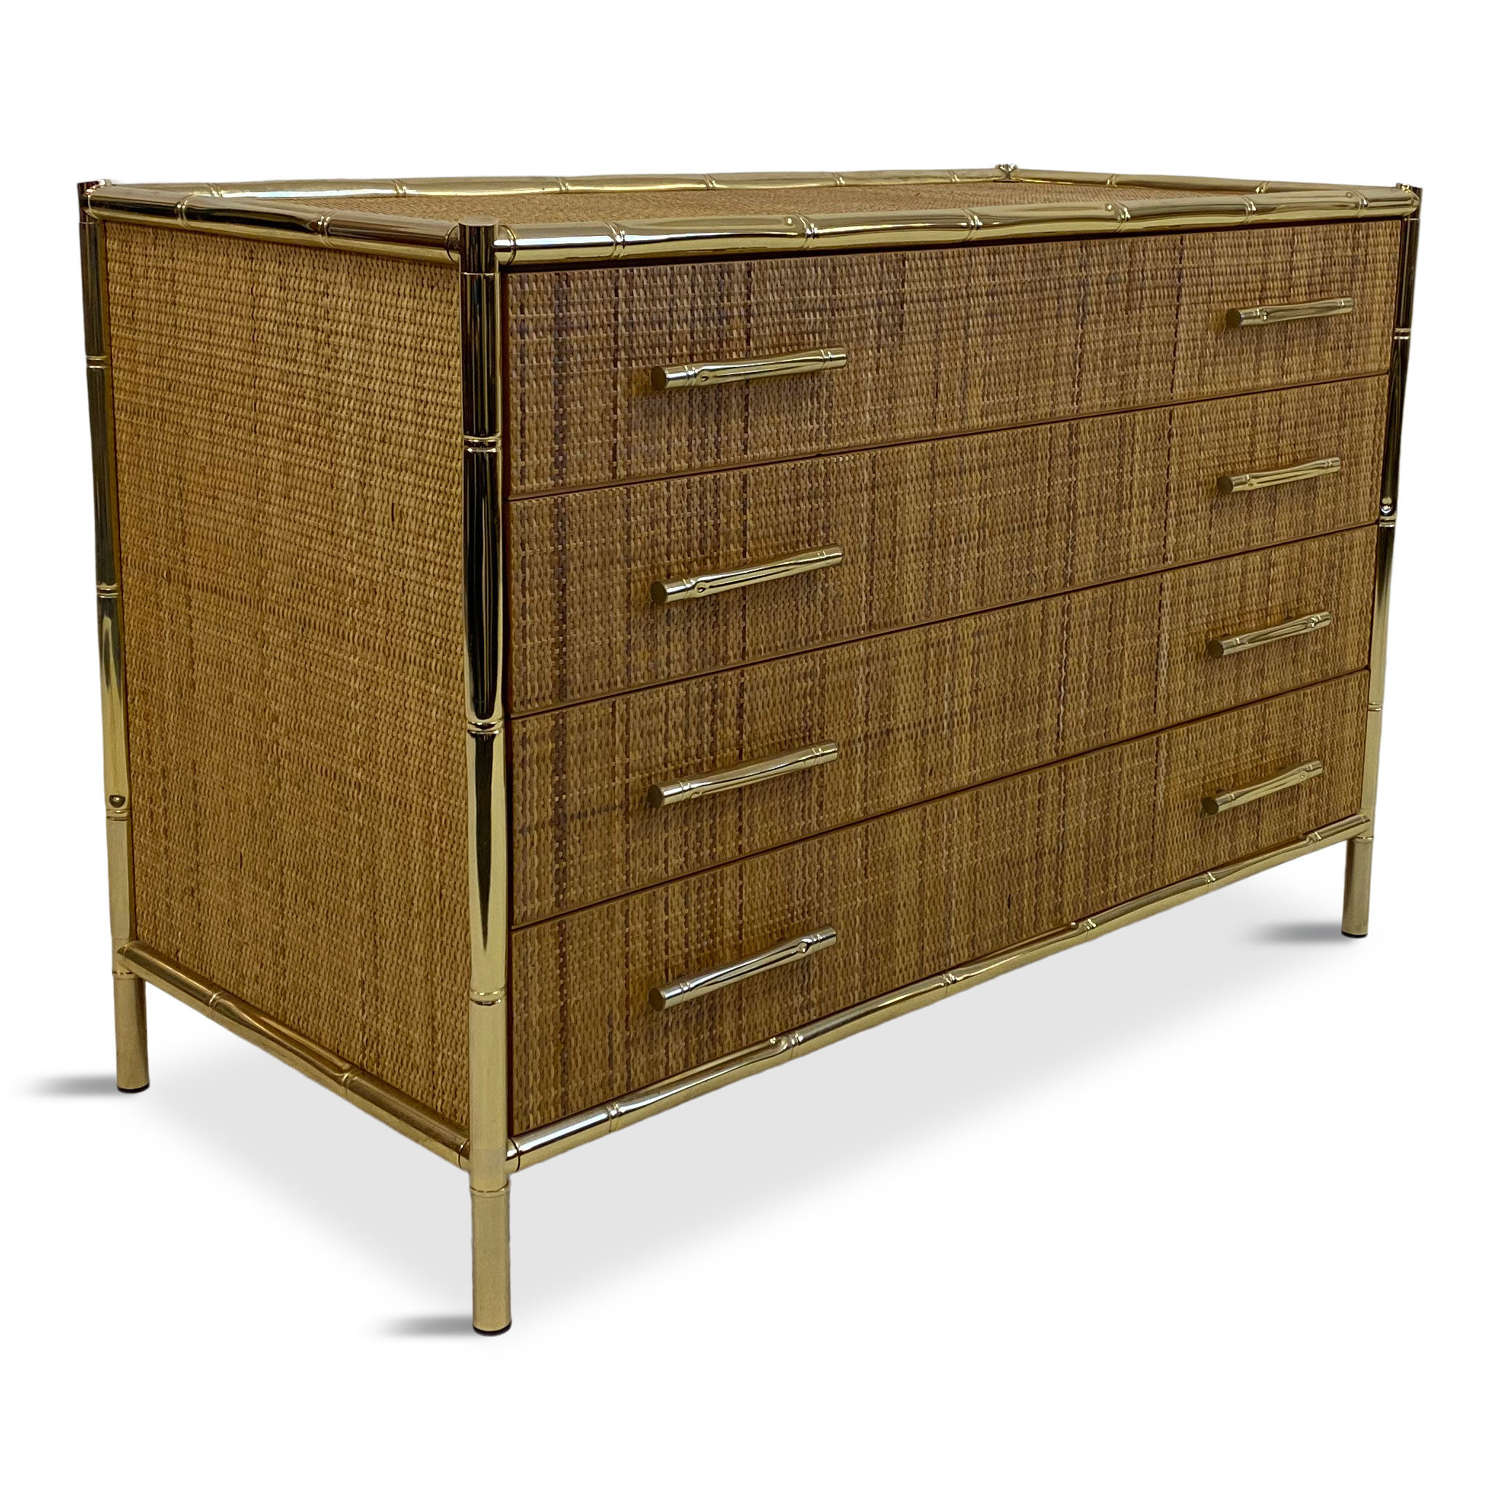 1970s rattan and brass faux bamboo chest of drawers